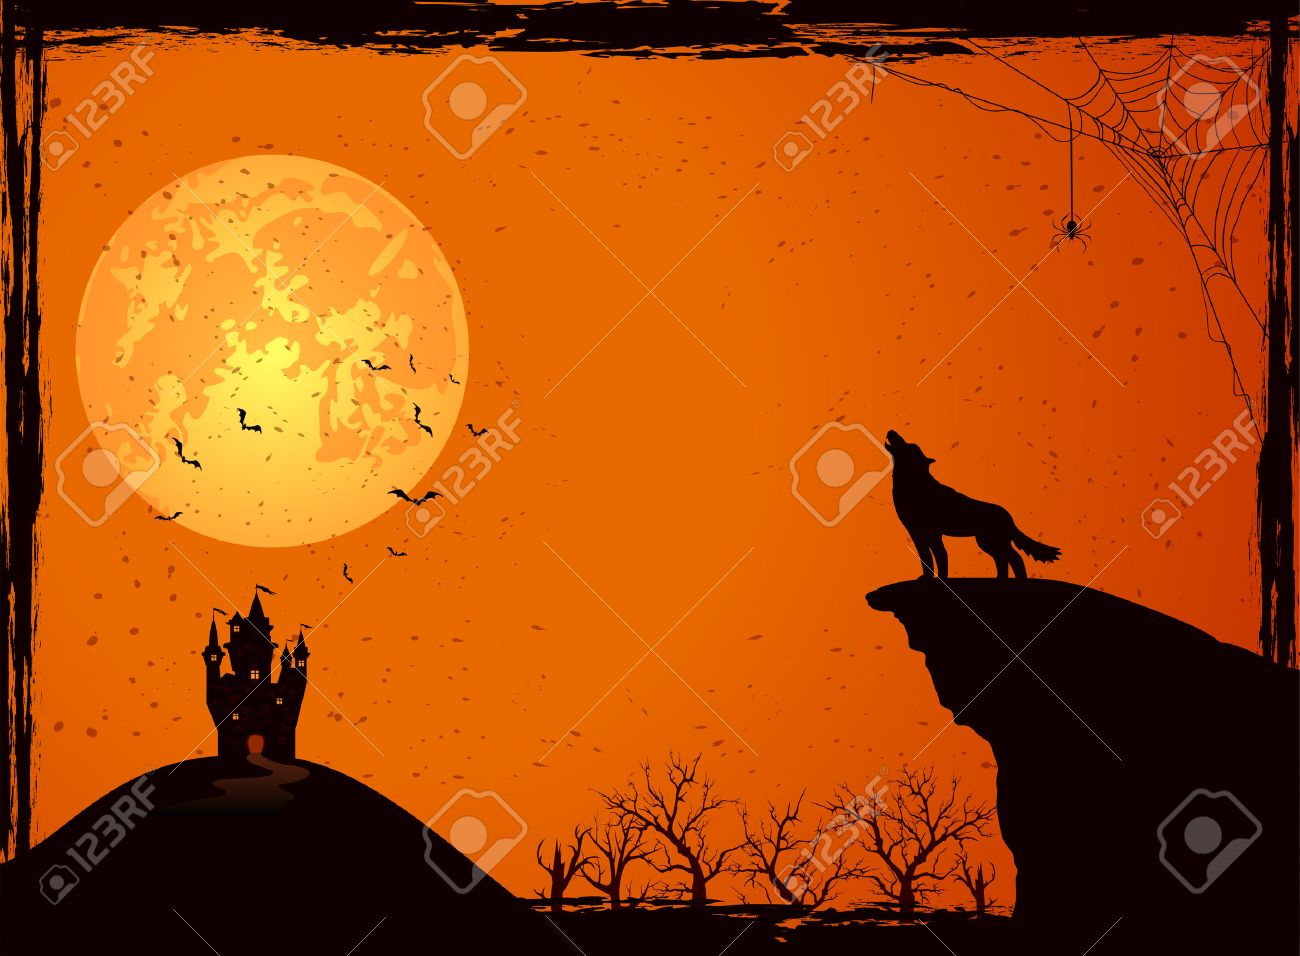 halloween night background with wolf castle moon cemetery and bats illustration - Wolf Halloween